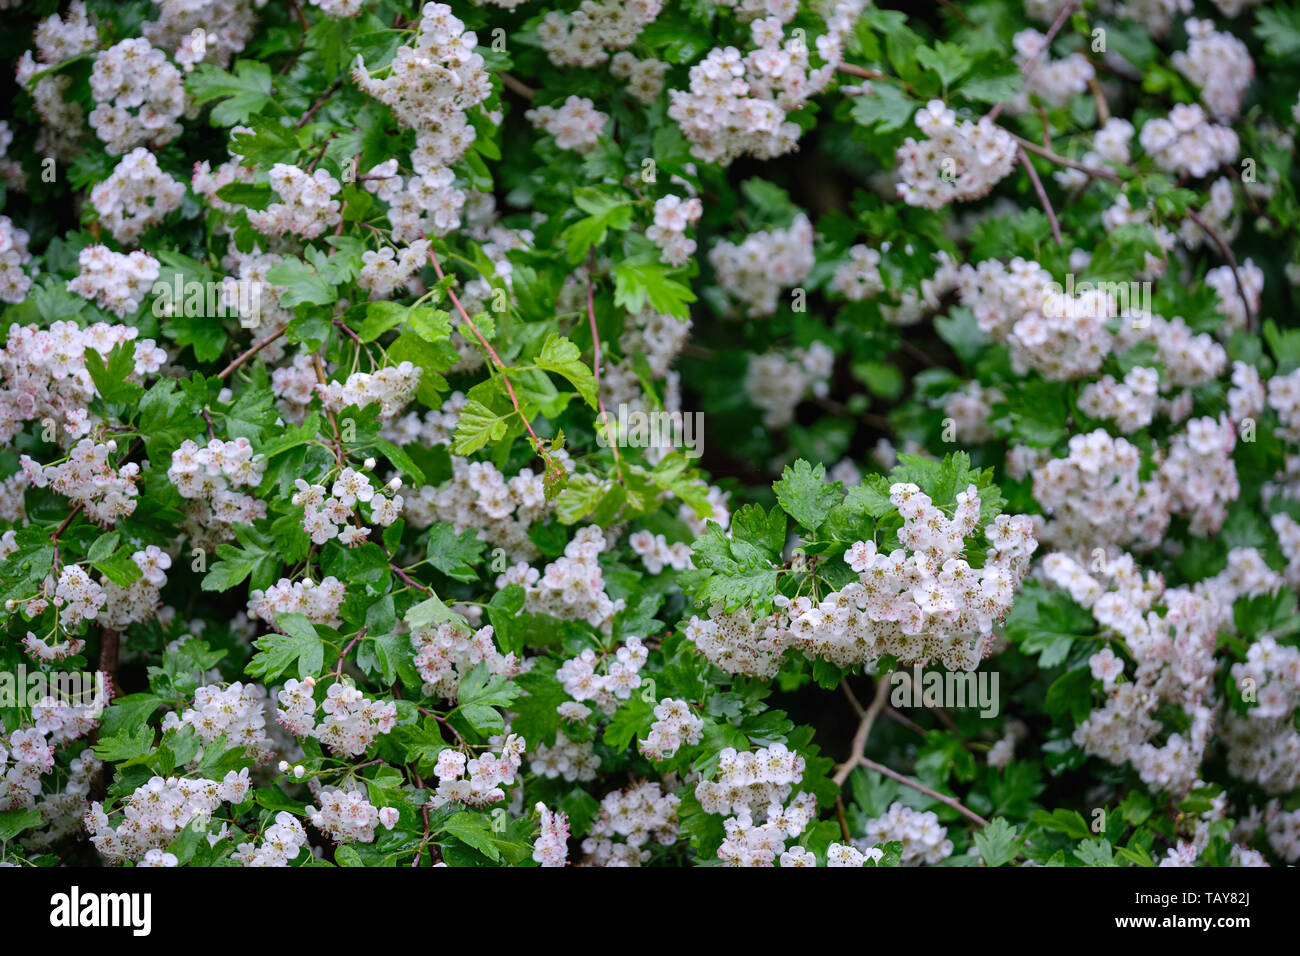 Closeup of a beautiful white flowering hawthorn tree in the forest with green springtime leaves - Stock Image